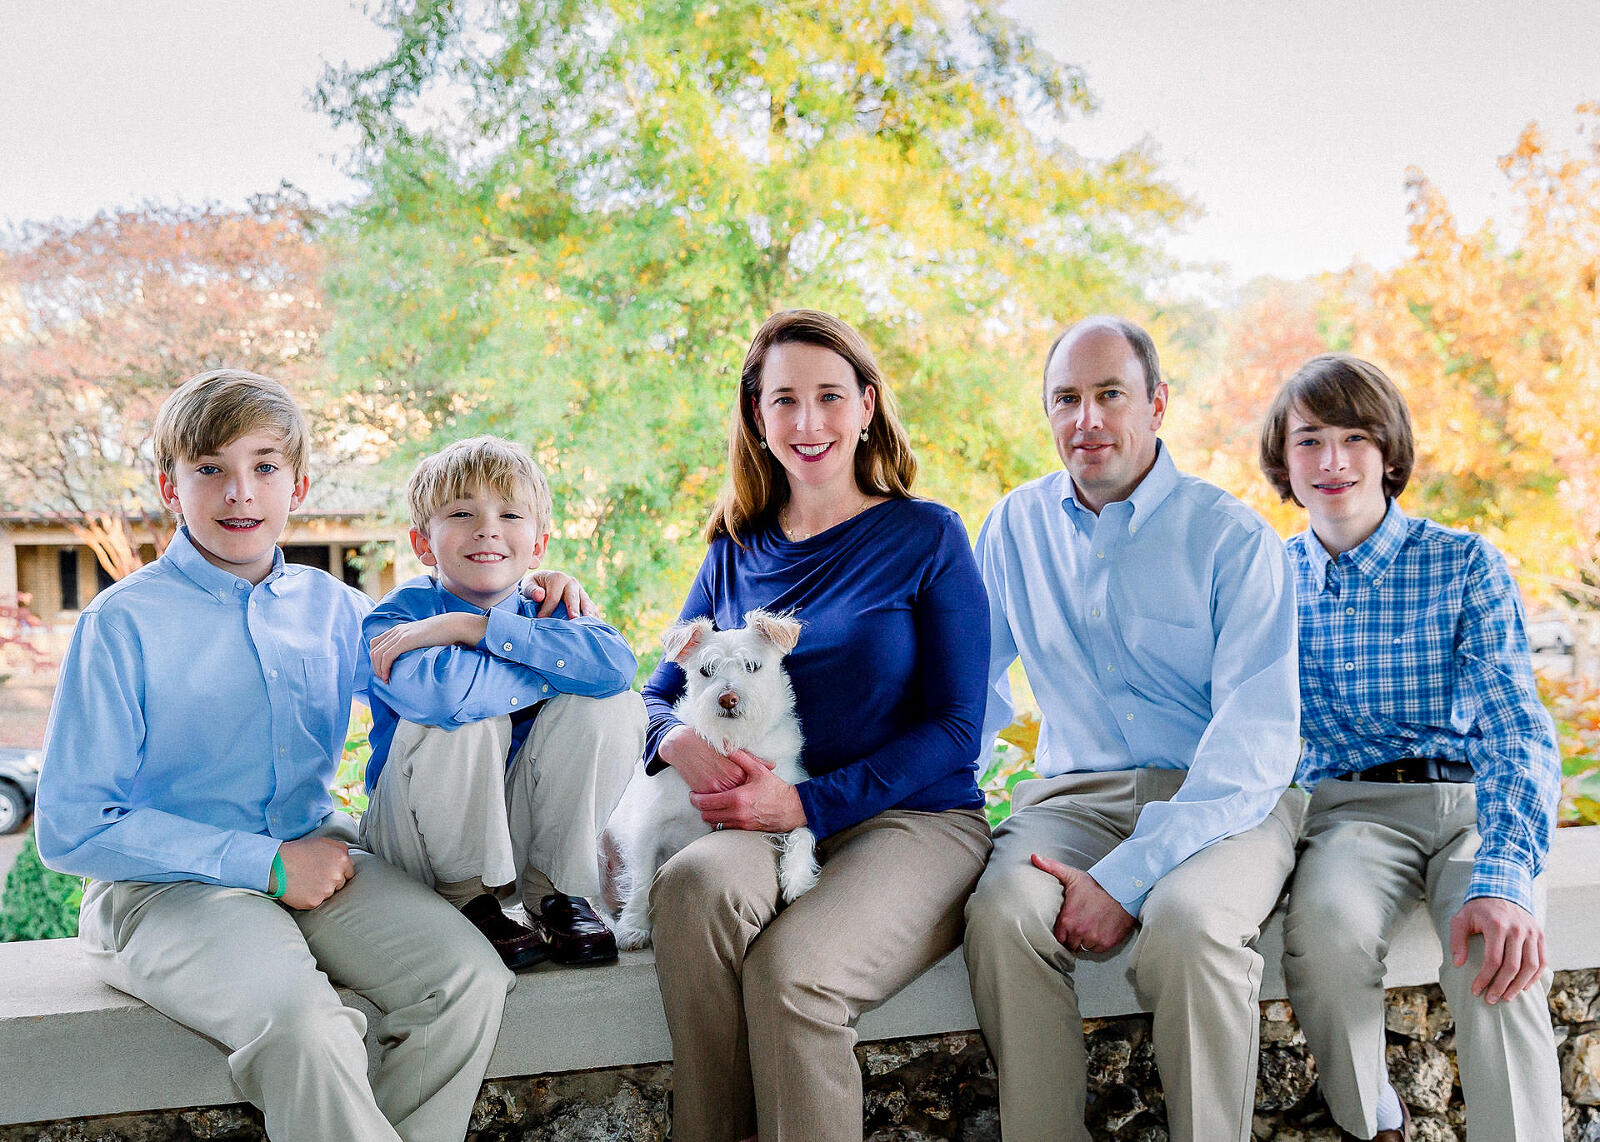 Family photography picture in Birmingham, Alabama by Irene Gardner